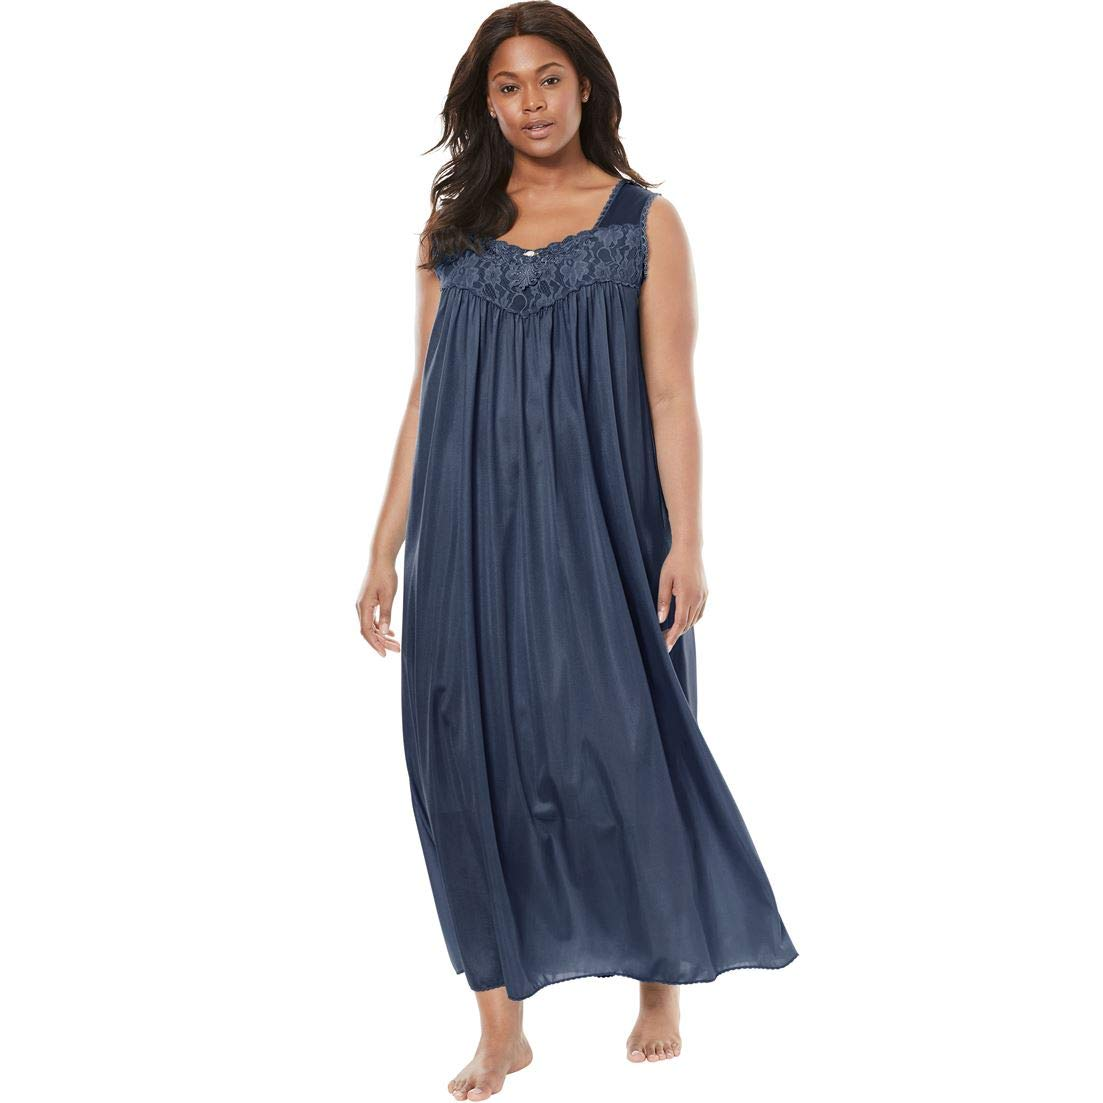 Only Necessities Womens Plus Size Long Tricot Knit Nightgown